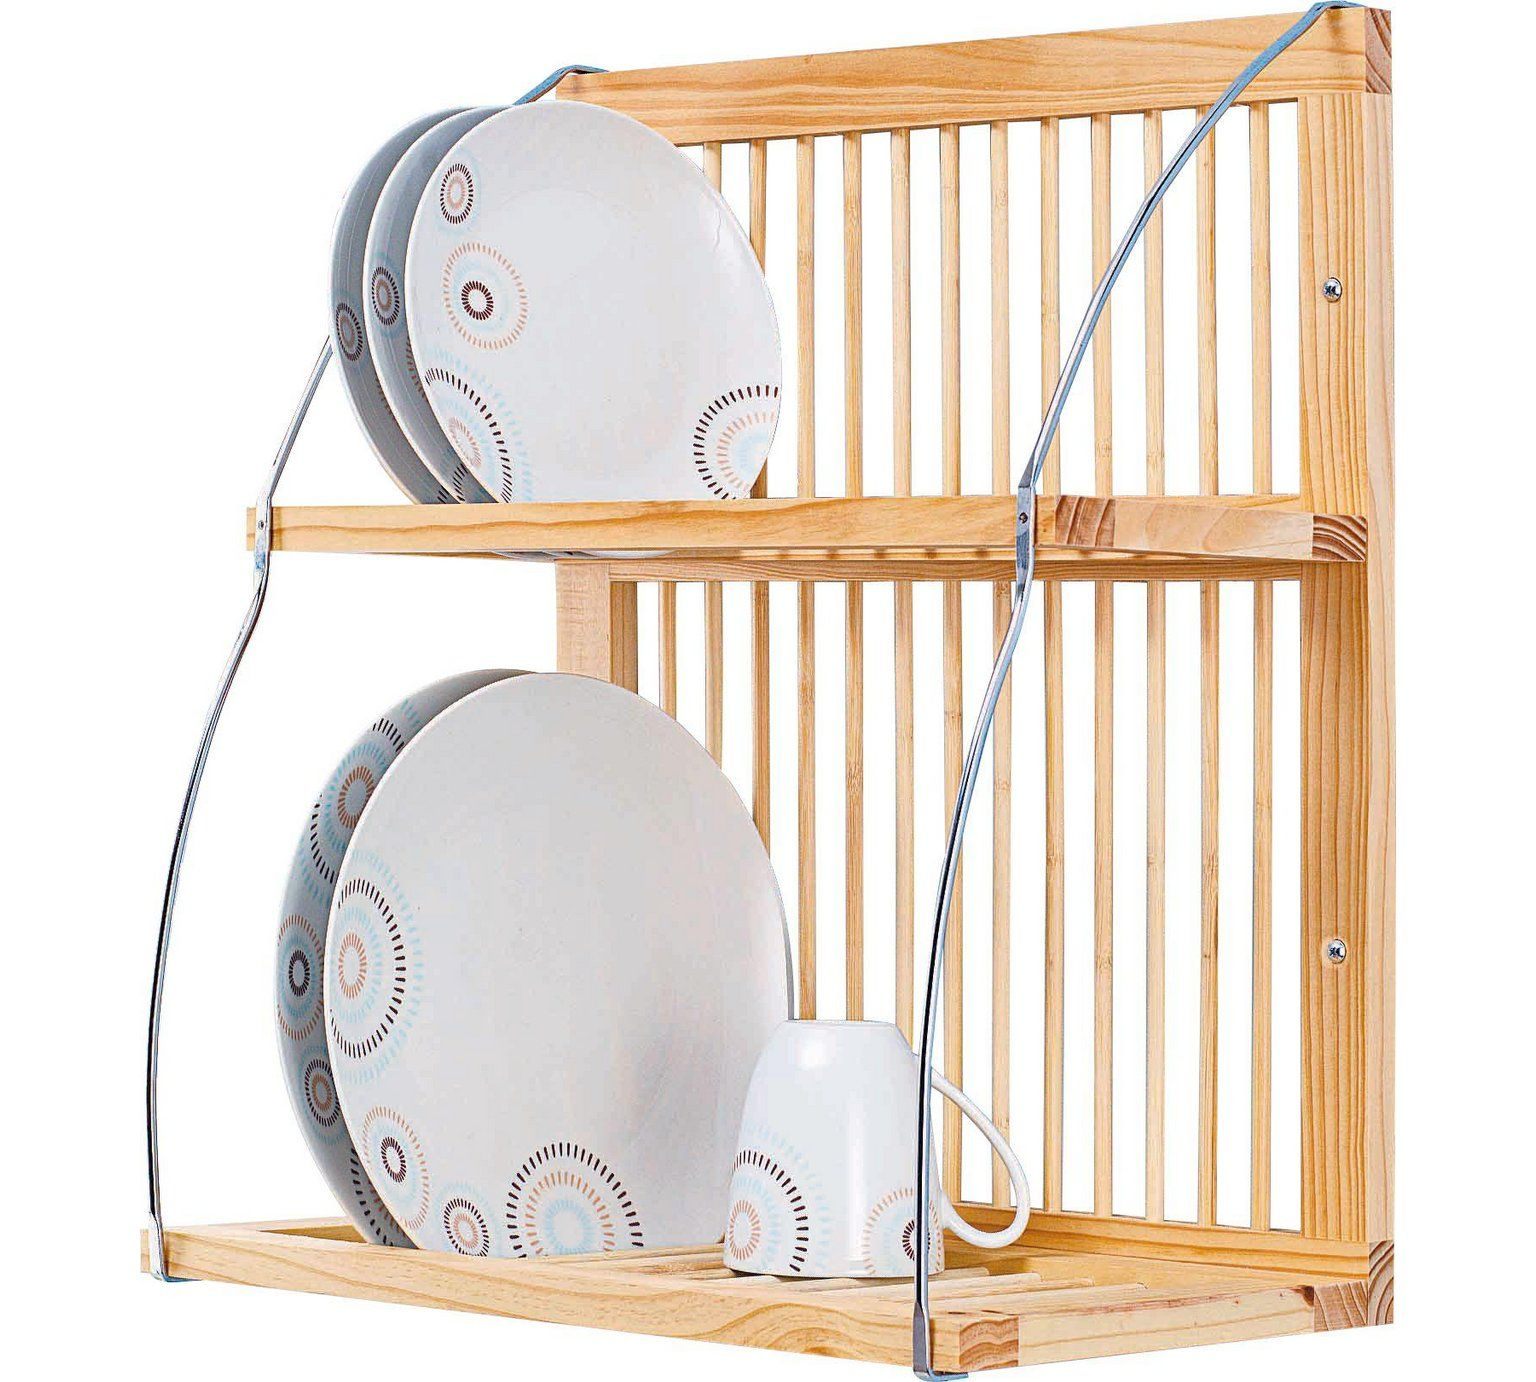 Buy HOME Wood and Metal Plate Rack at Argos.co.uk visit Argos  sc 1 st  Pinterest & Buy HOME Wood and Metal Plate Rack at Argos.co.uk visit Argos.co.uk ...